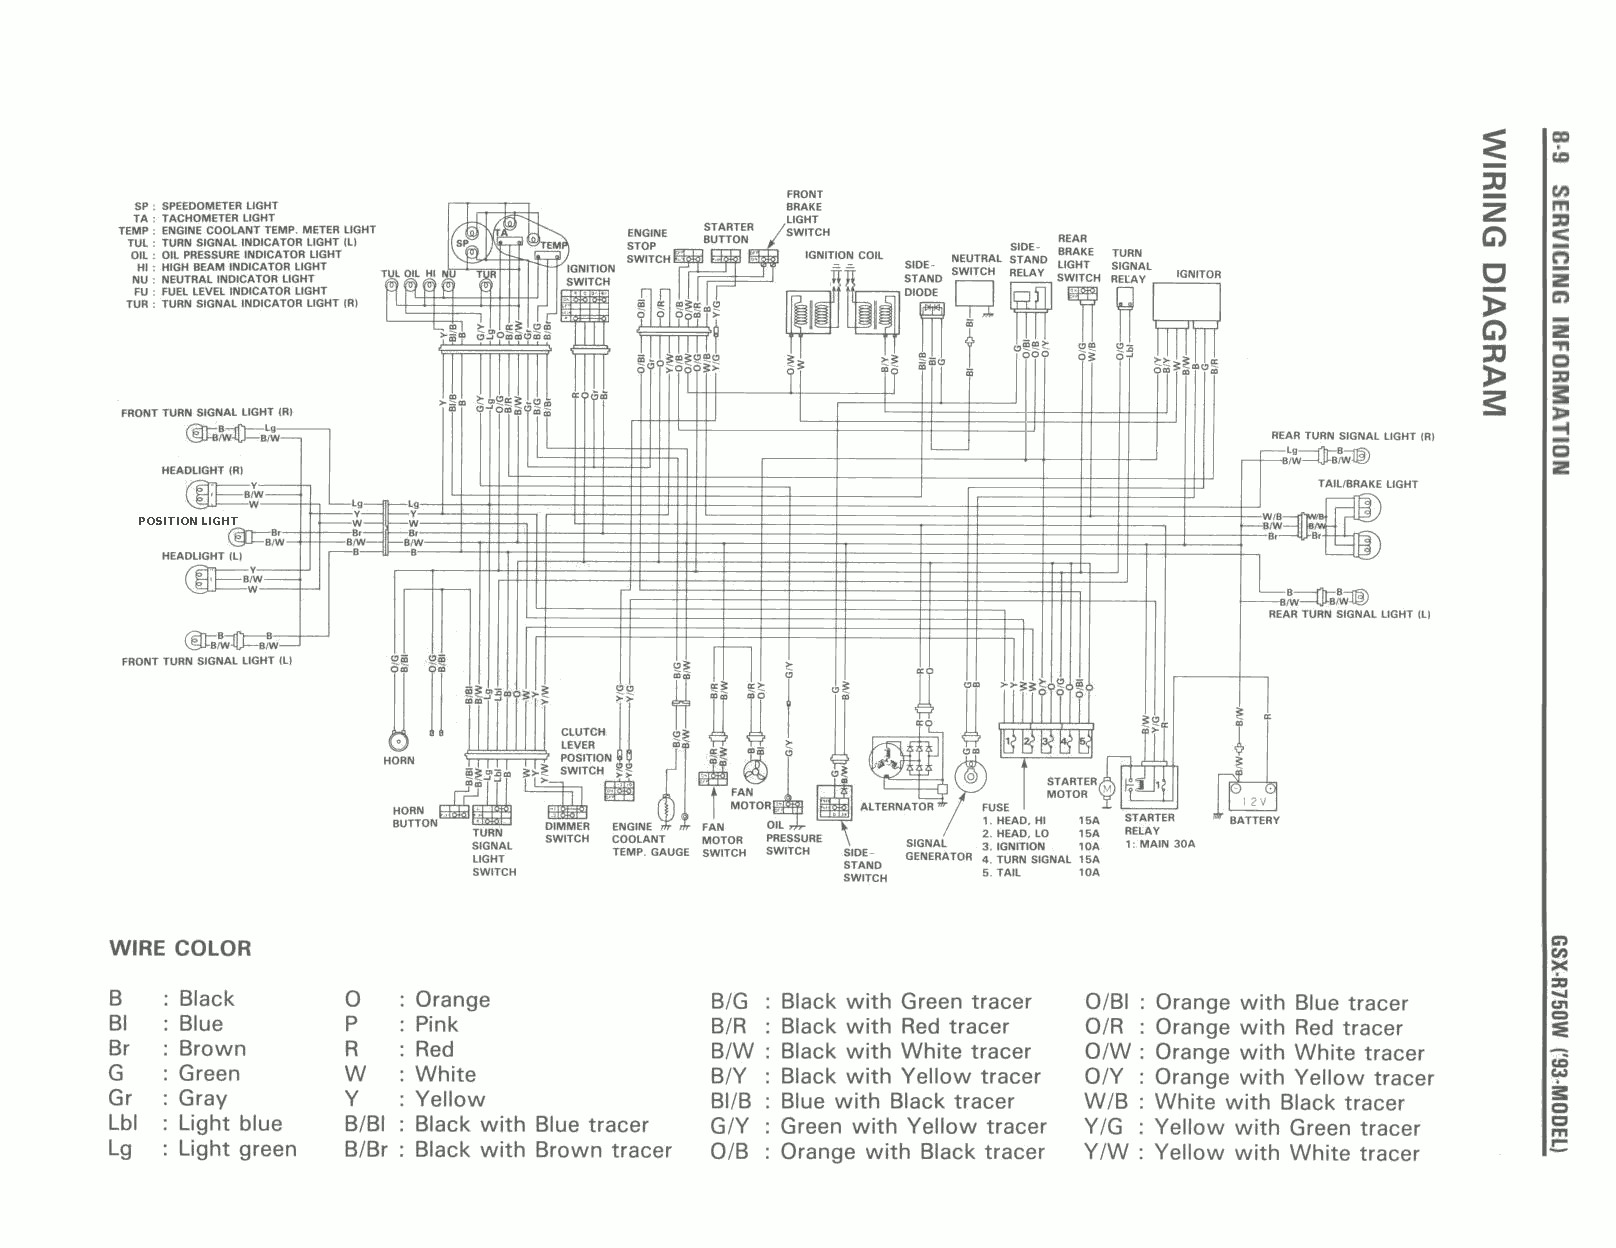 GSXR750 1993 wiring diagram?resize\\\\\\\\\\\\\\\\\\\\\\\\\\\\\\\\\\\\\\\\\\\\\\\\\\\\\\\\\=665%2C514 yamaha ttr wiring diagram wiring diagrams ttr 250 wiring diagram at gsmx.co